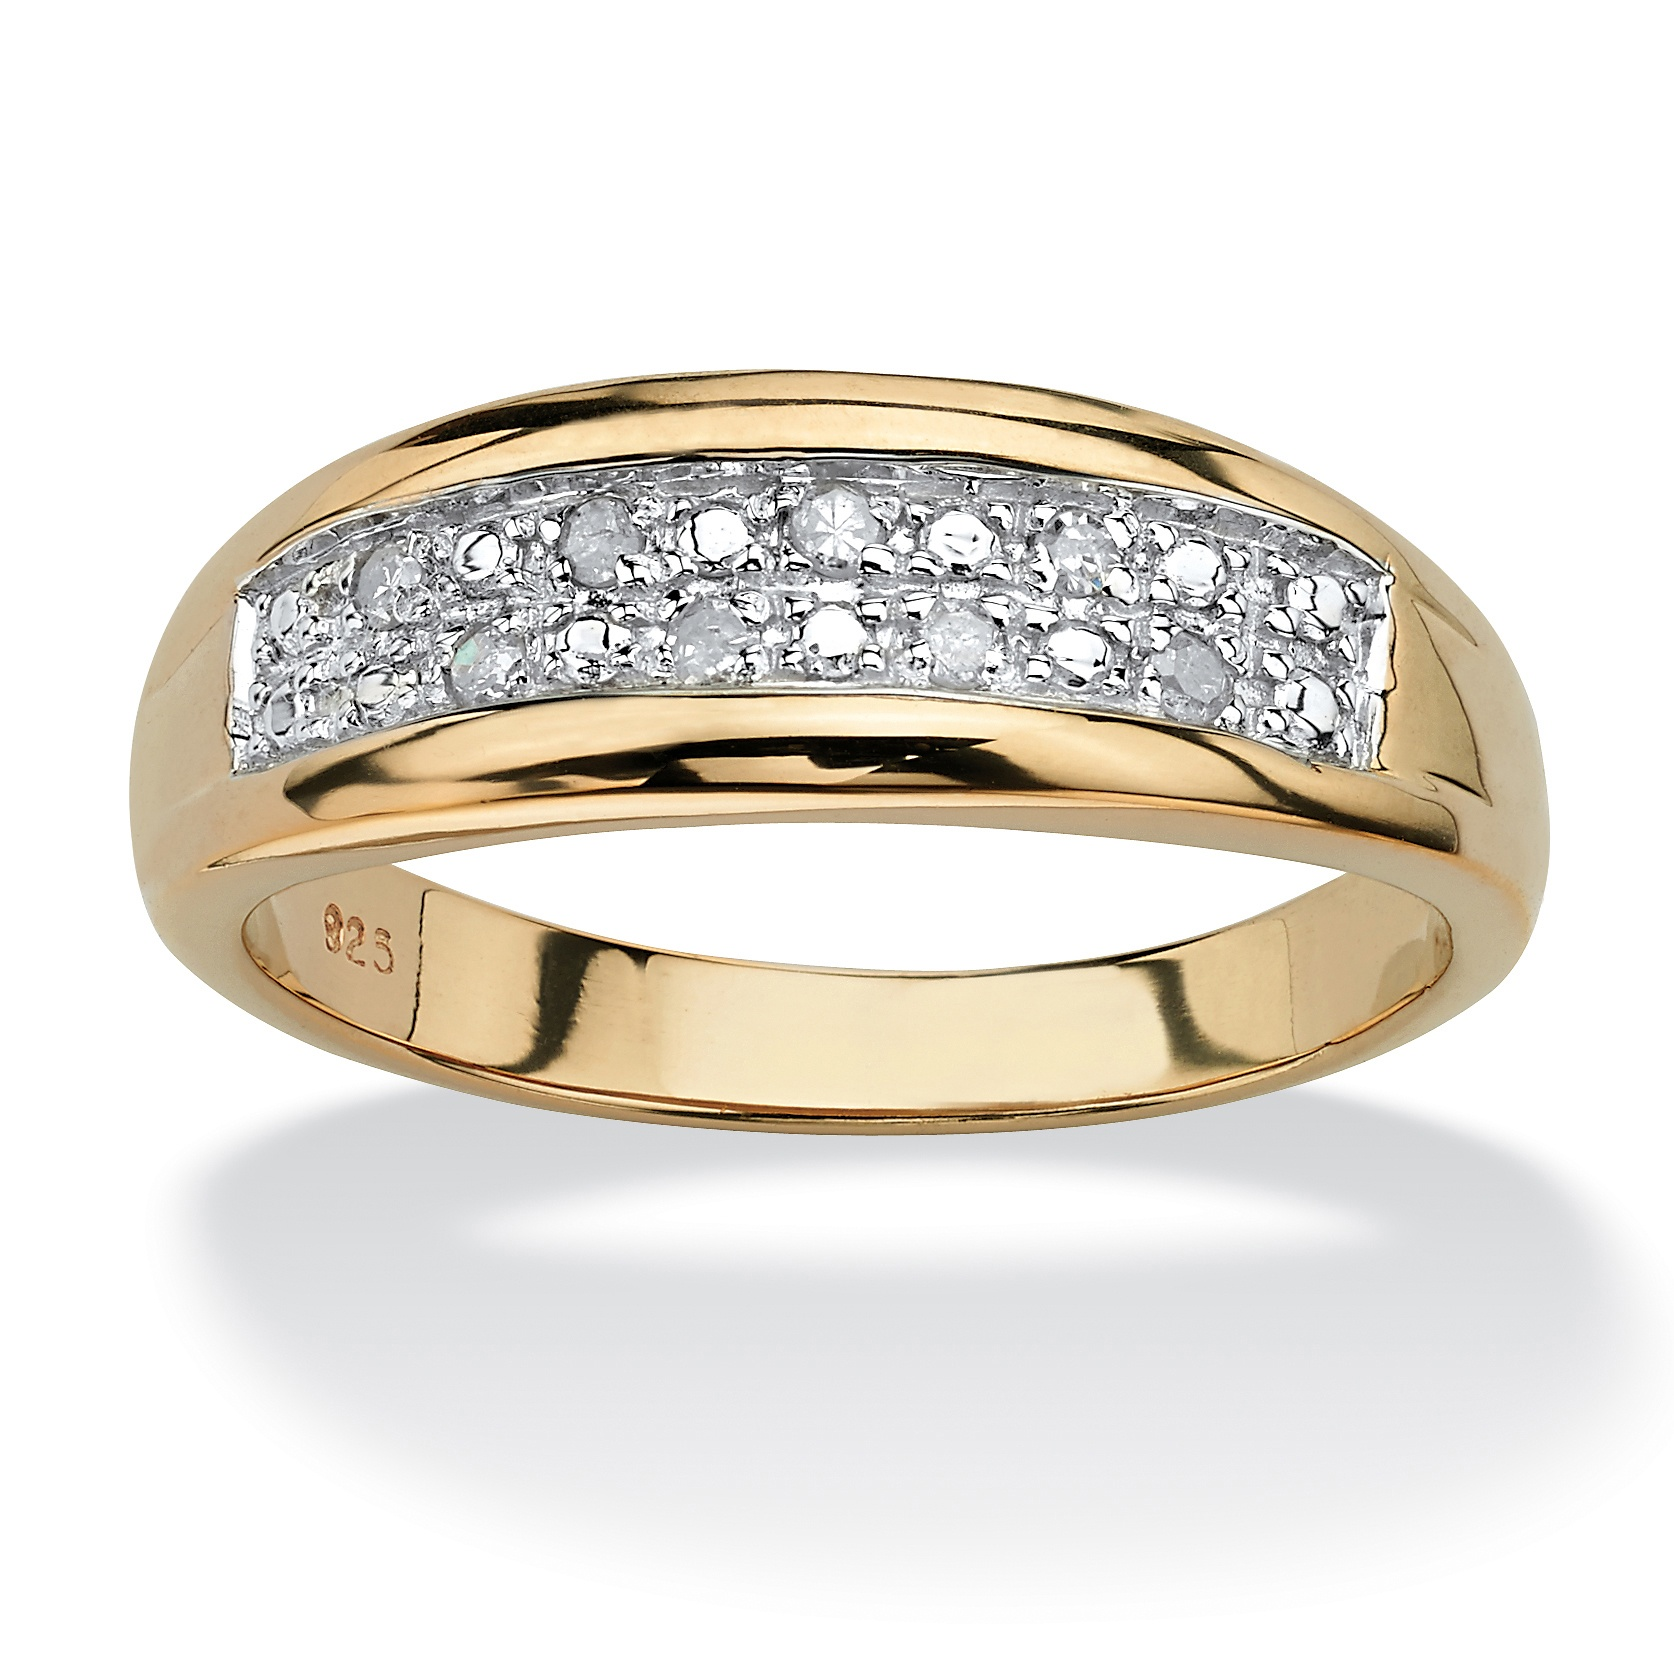 Men's 1/8 TCW Pave Diamond Wedding Band in 18k Gold over Sterling Silver